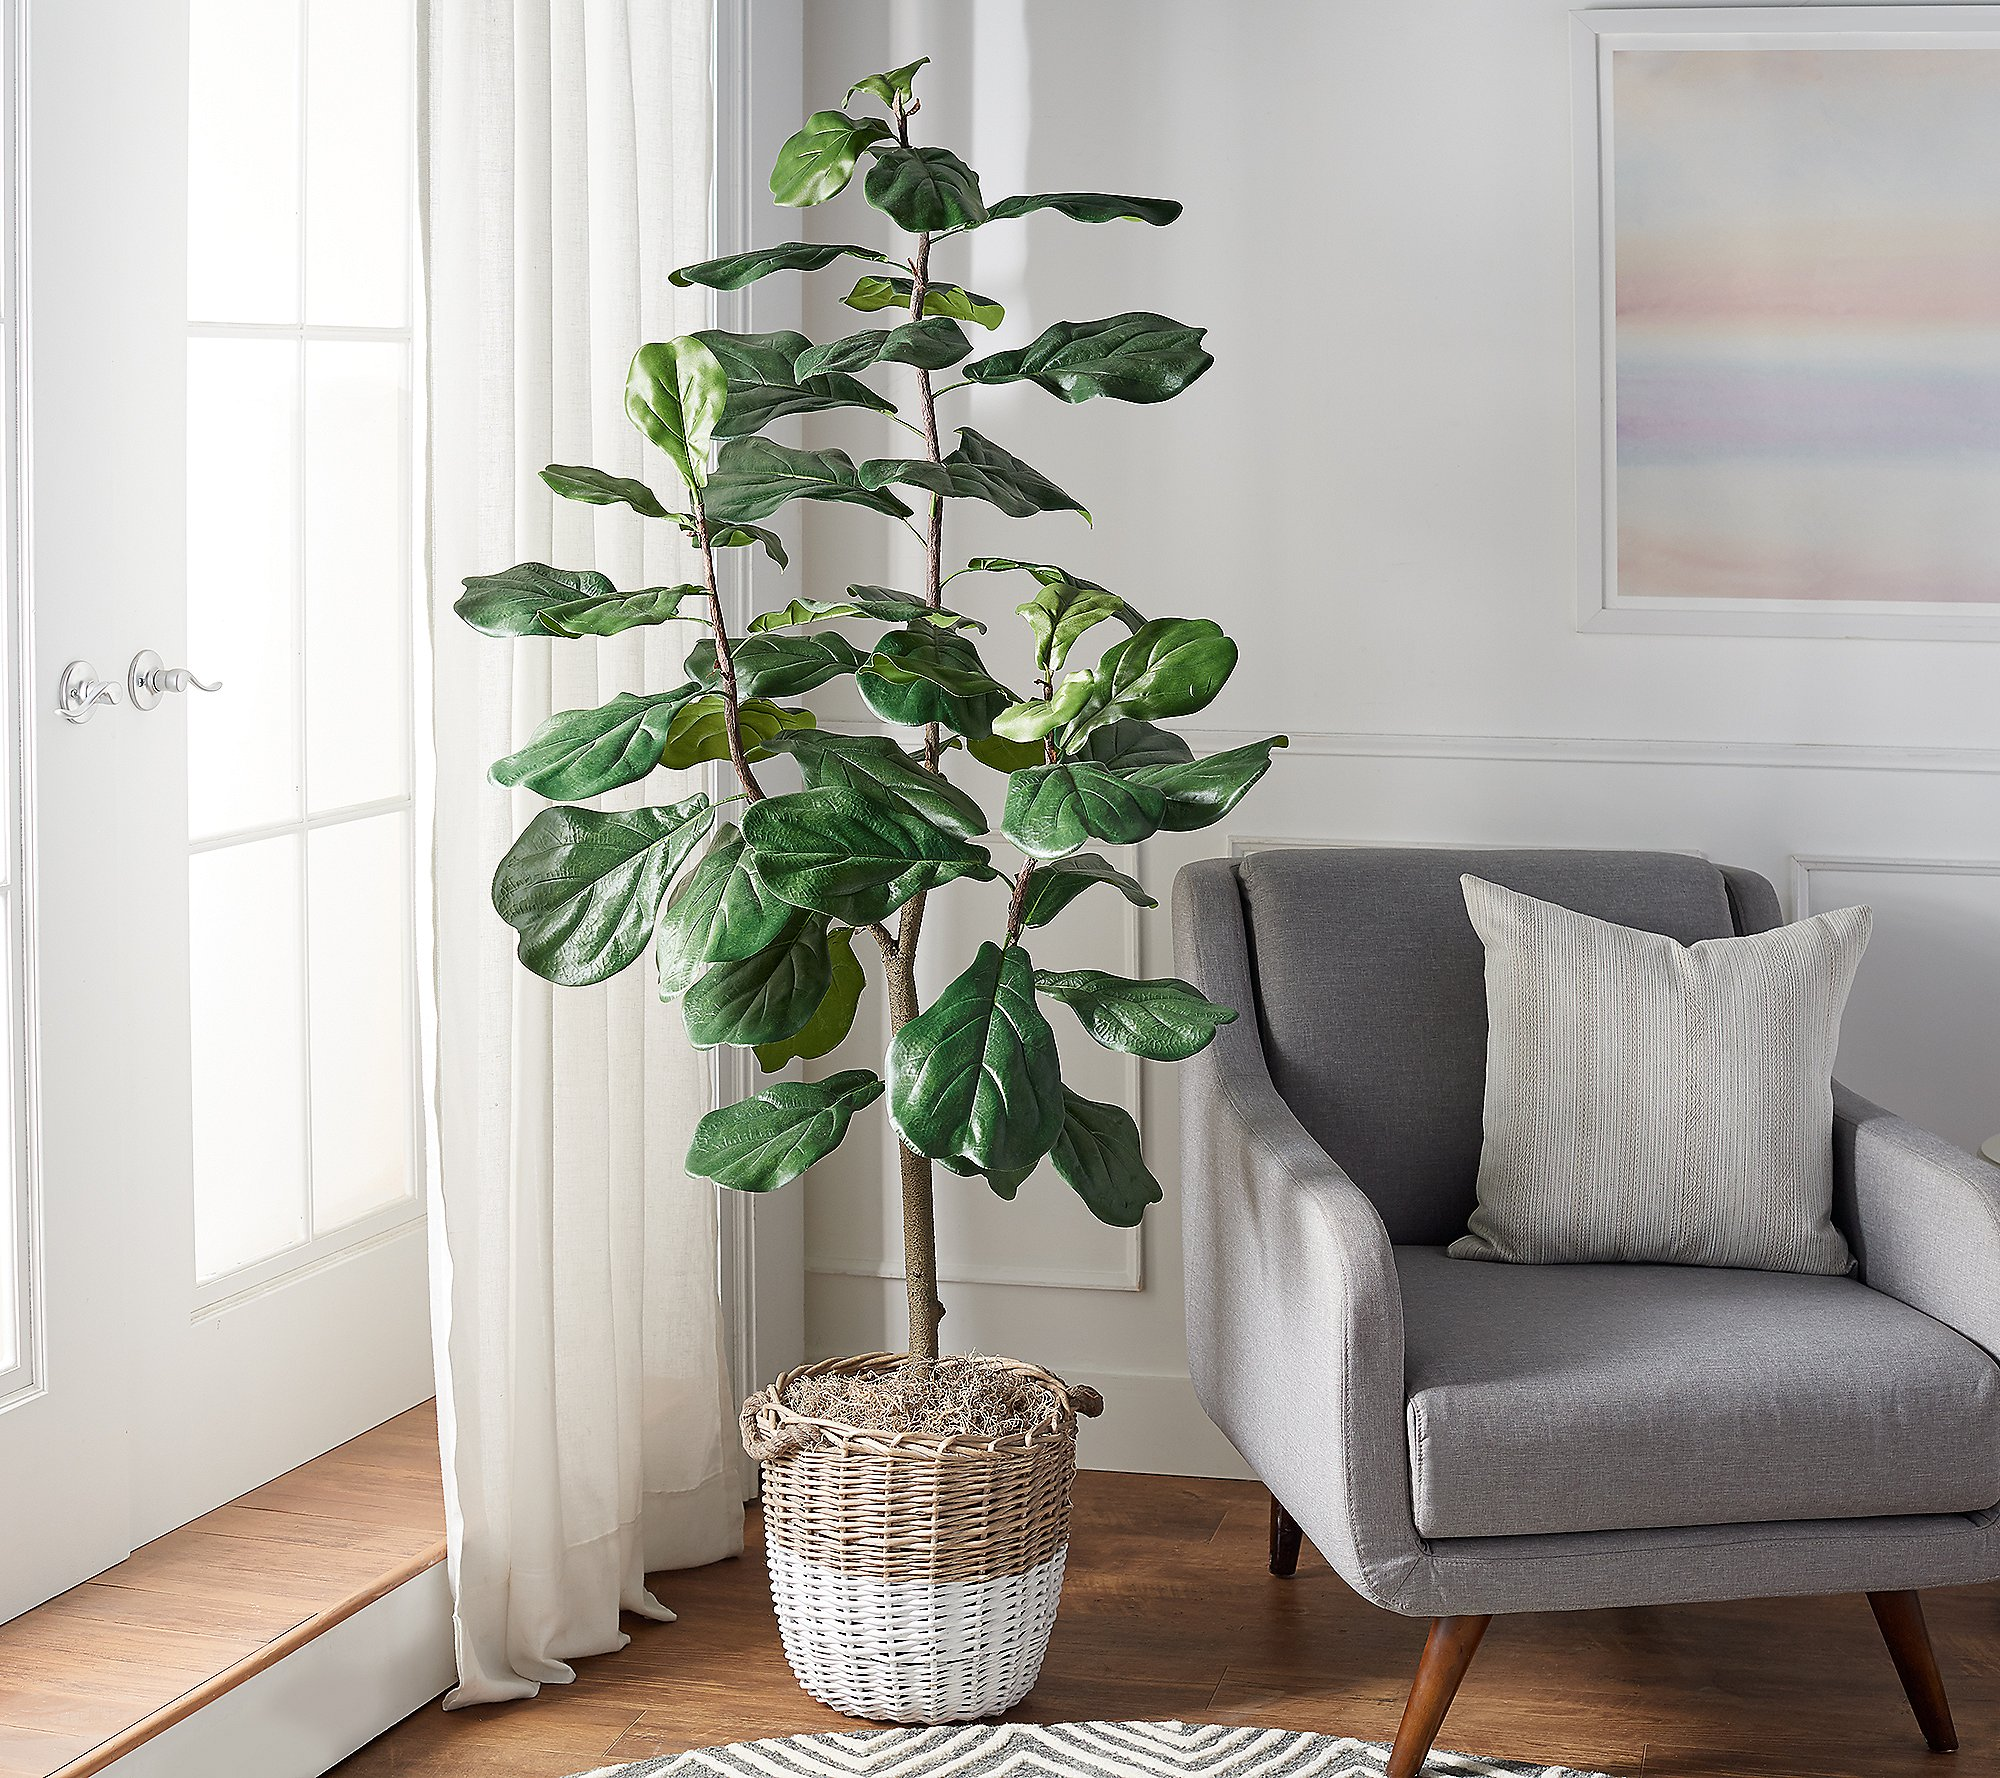 Shop 6' Faux Fiddle Leaf Tree in Starter Pot by Valerie from QVC on Openhaus